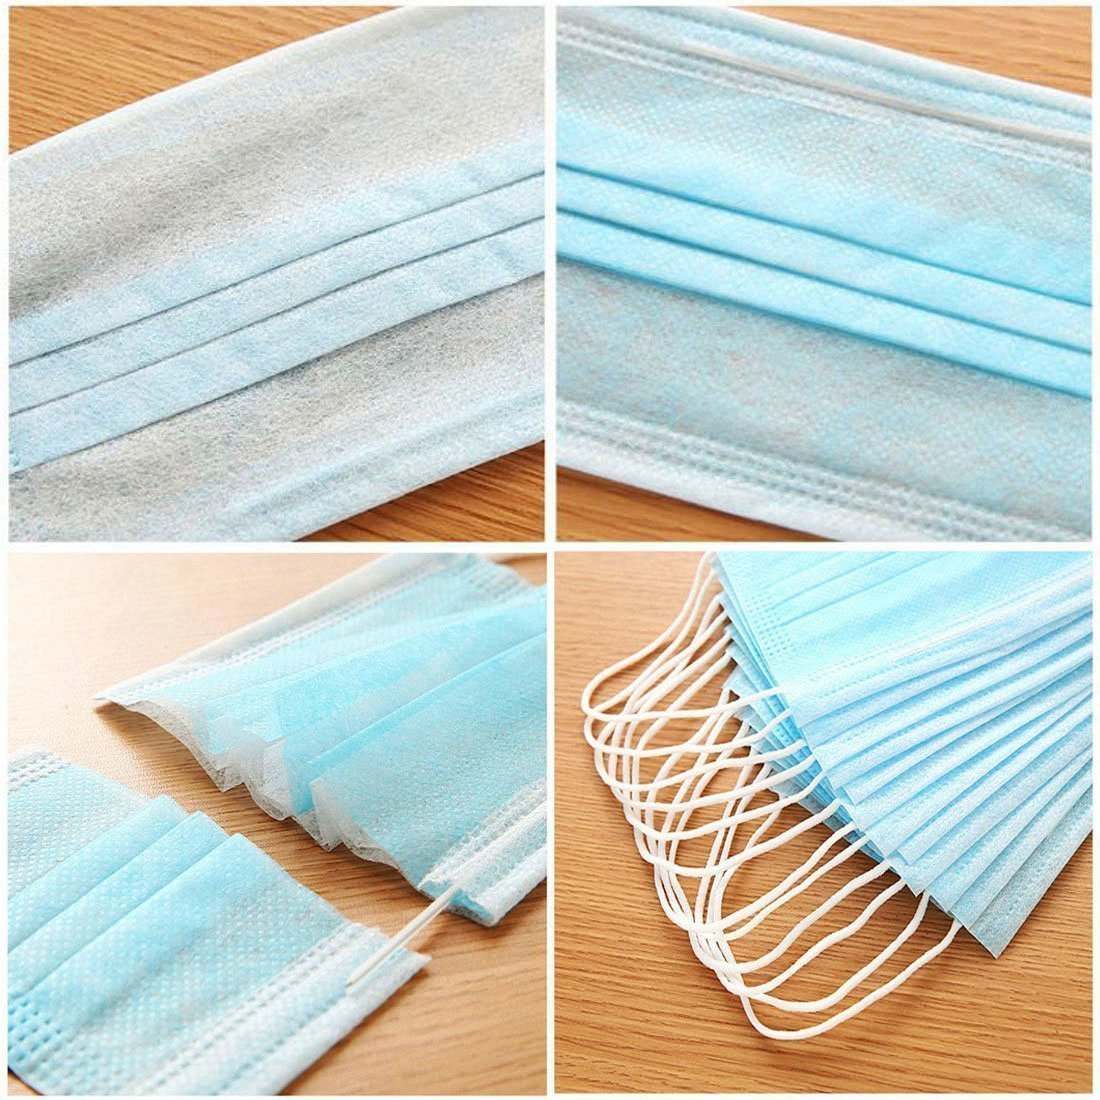 Face Mask Disposable 2 Ply With Elastic (Pkt of 100 pcs) by wonder wagon